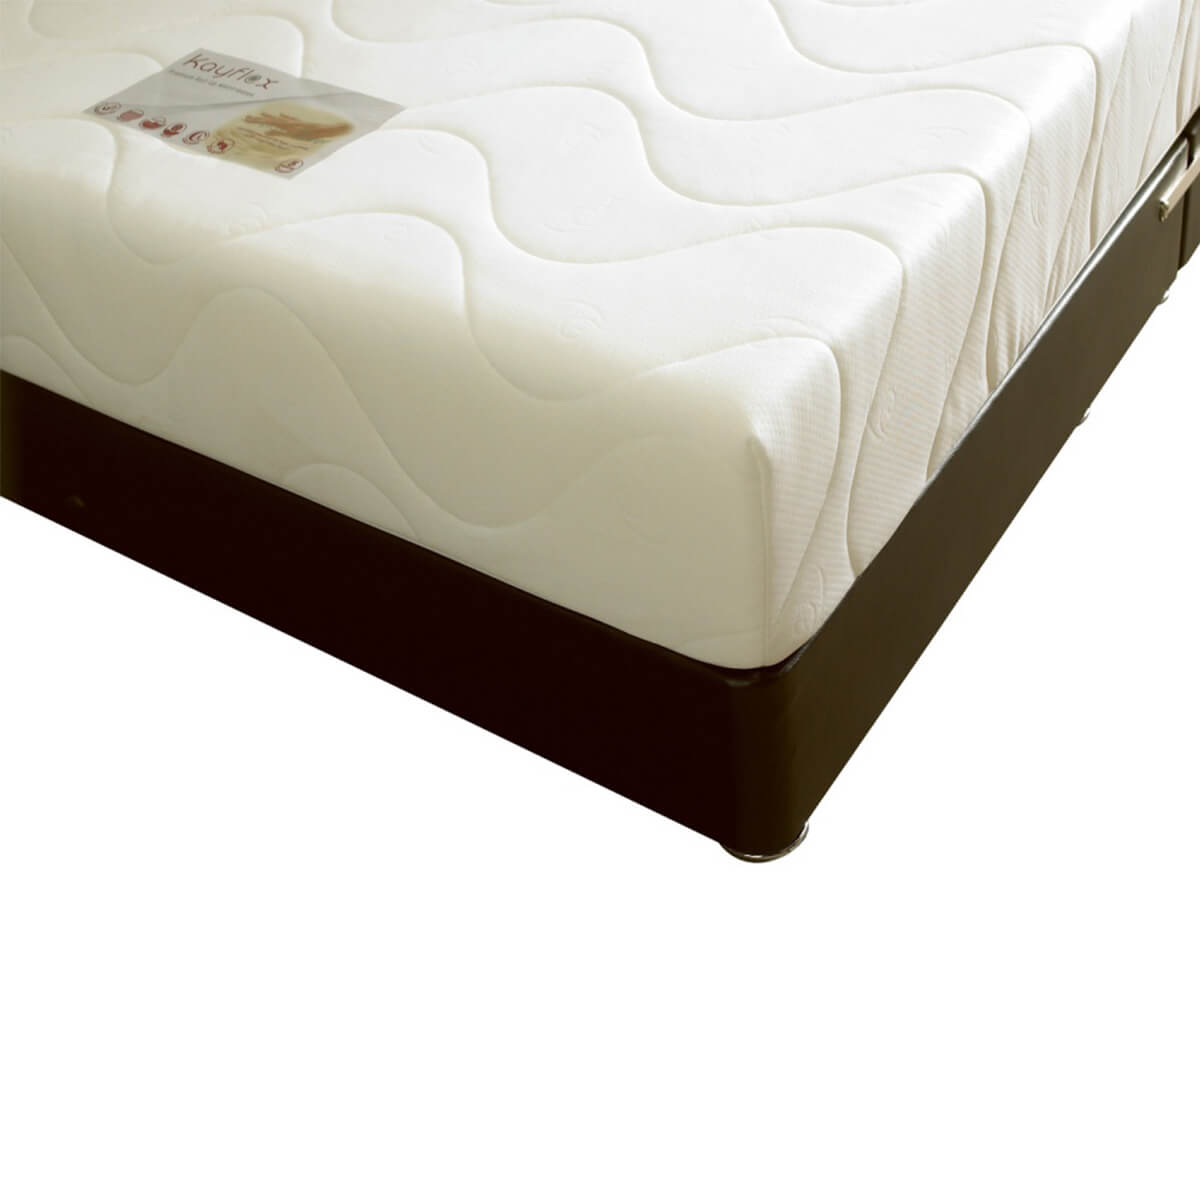 SilverFlex Memory Foam Mattress 20cm Depth